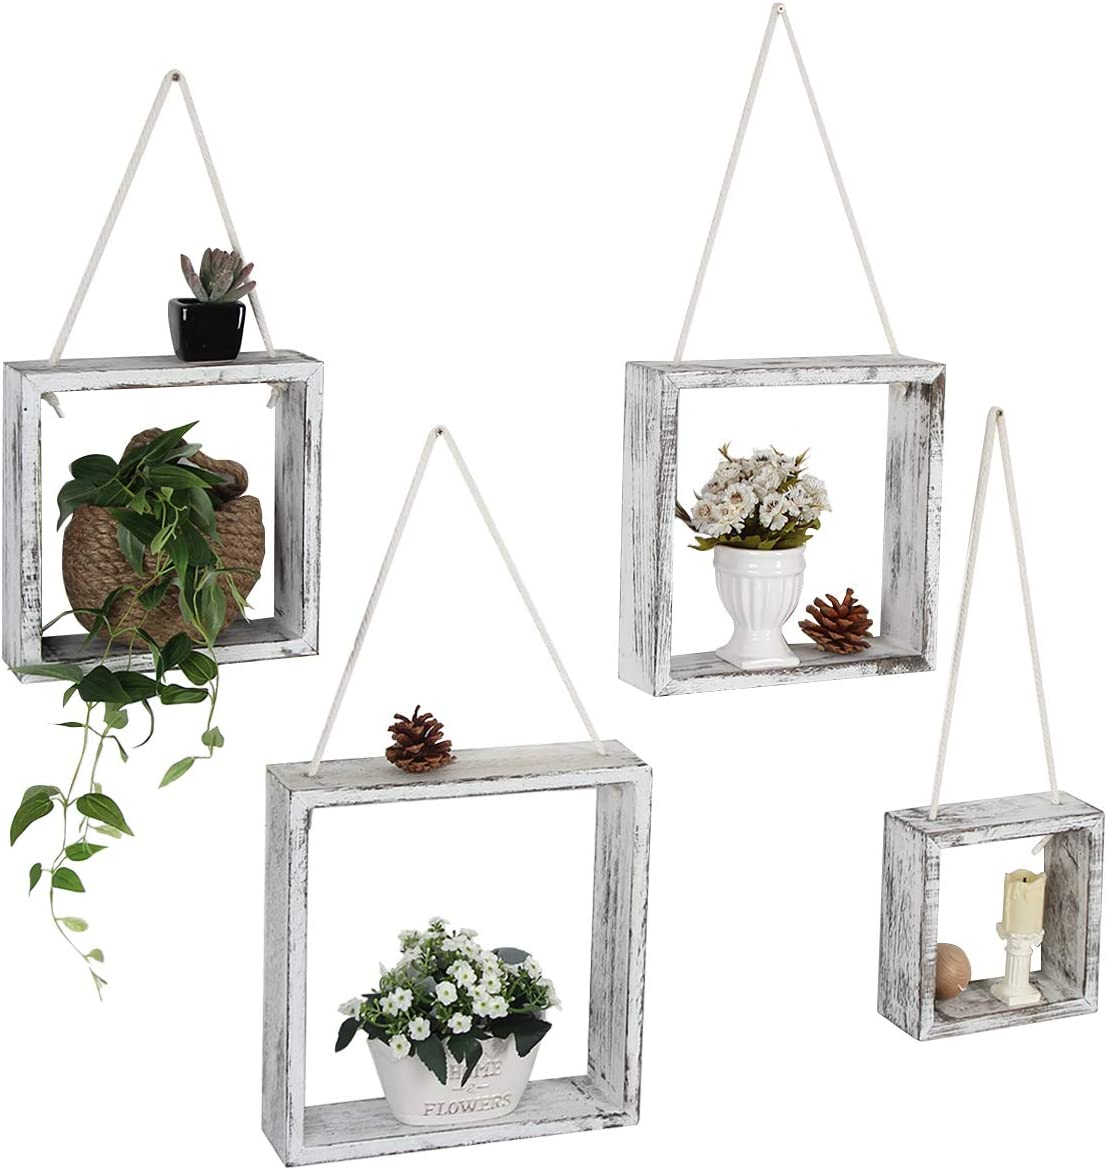 J JACKCUBE DESIGN Floating Hanging Square Shelves Wall Mounted Rustic Wood Cube Display Shelf Shadow Boxes Decorative Boho Home Décor for Living Room, Bedroom, Office, Set of 4 (White) - MK571C